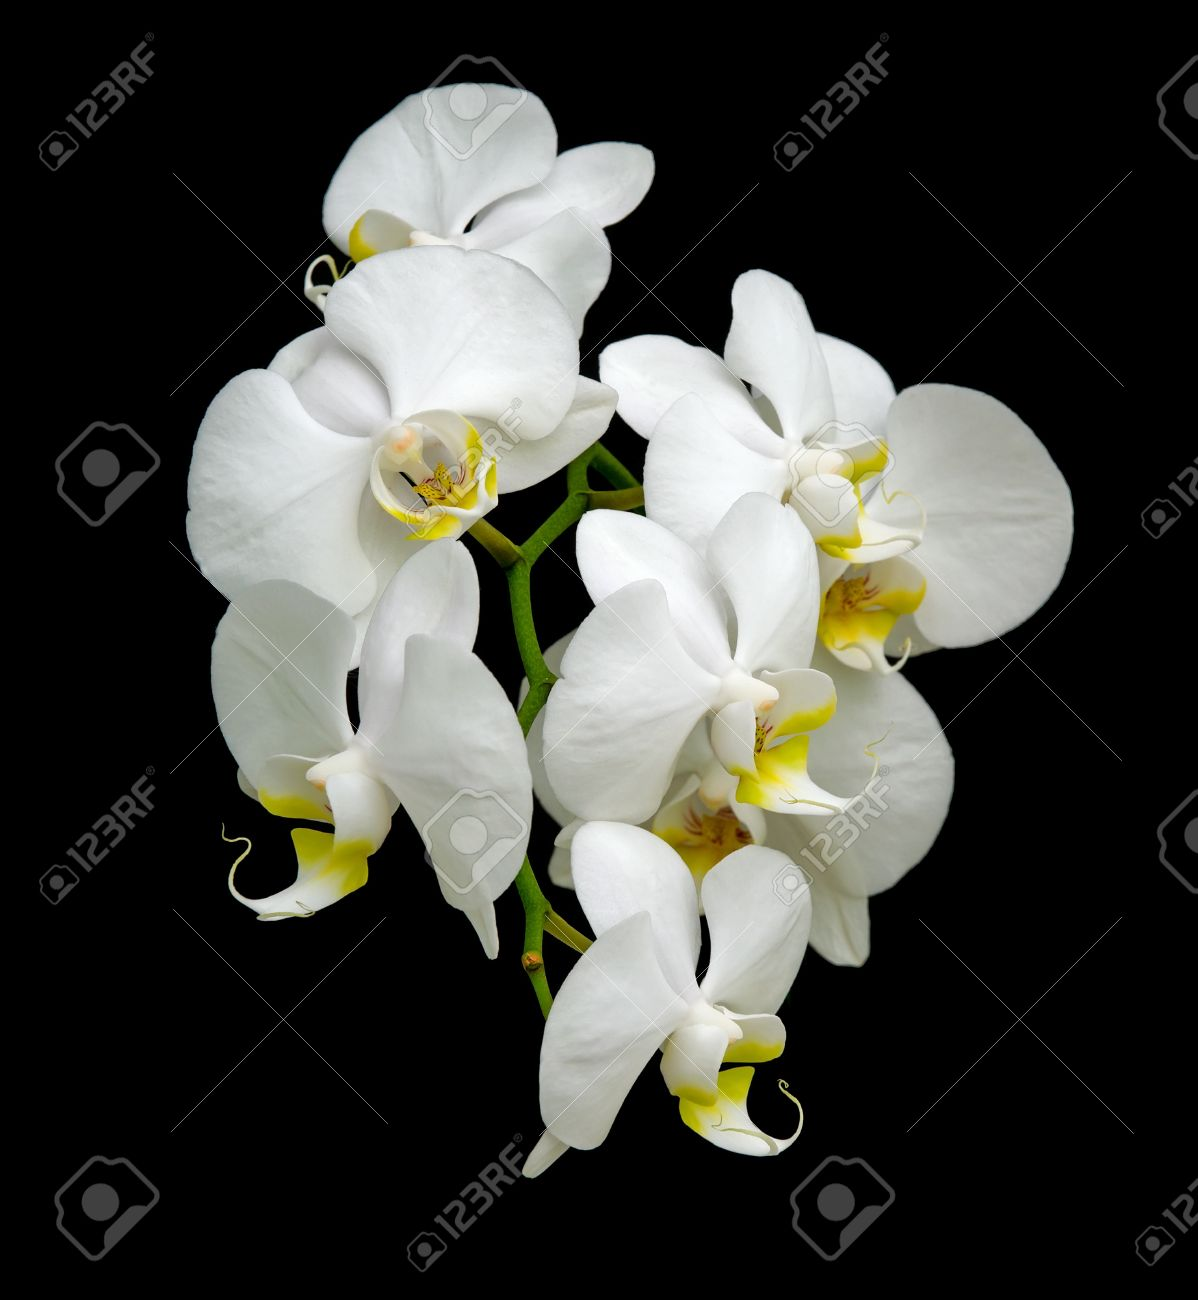 White orchid blooms. Close-up on a black background. Stock Photo - 9571282